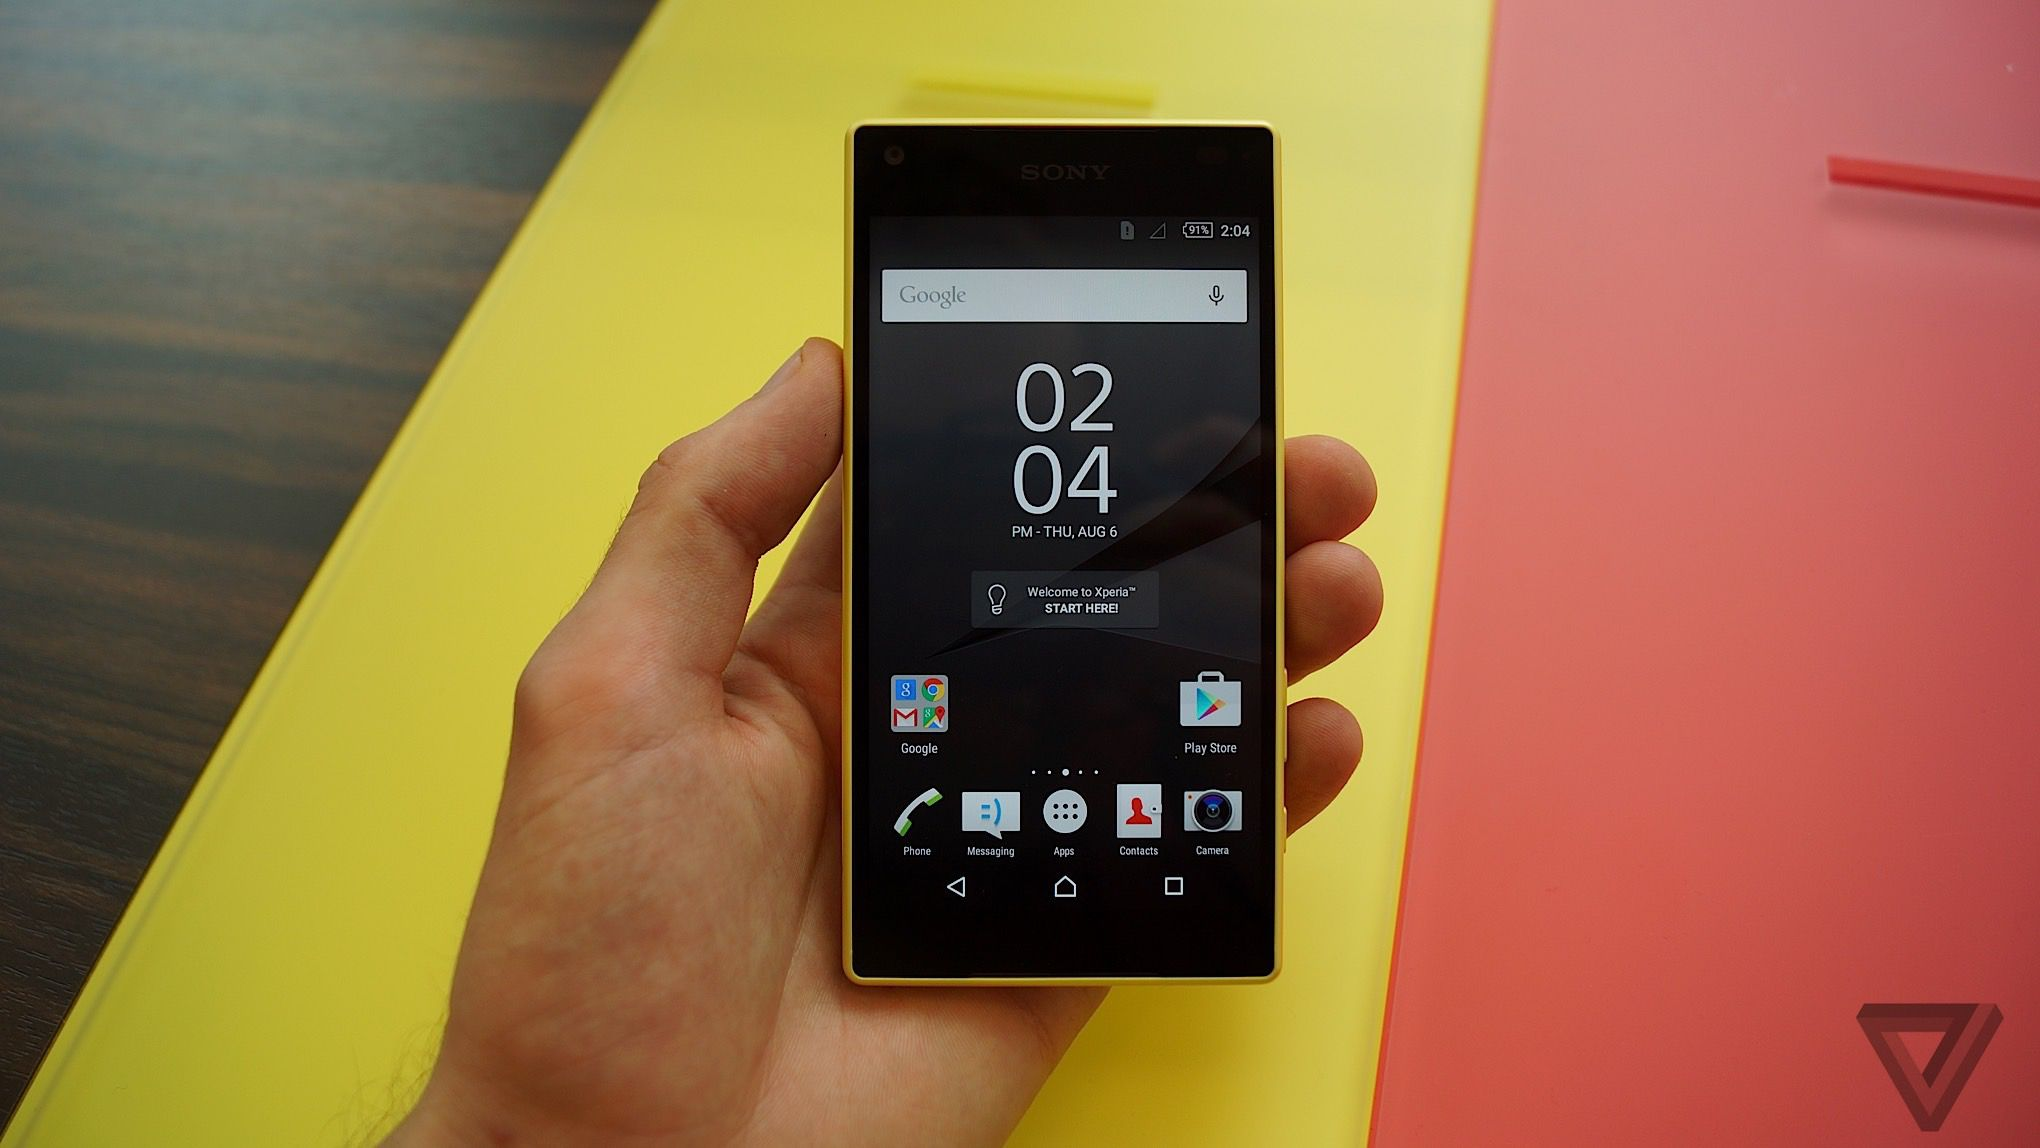 sony launches xperia z5 family with fingerprint sensor and. Black Bedroom Furniture Sets. Home Design Ideas